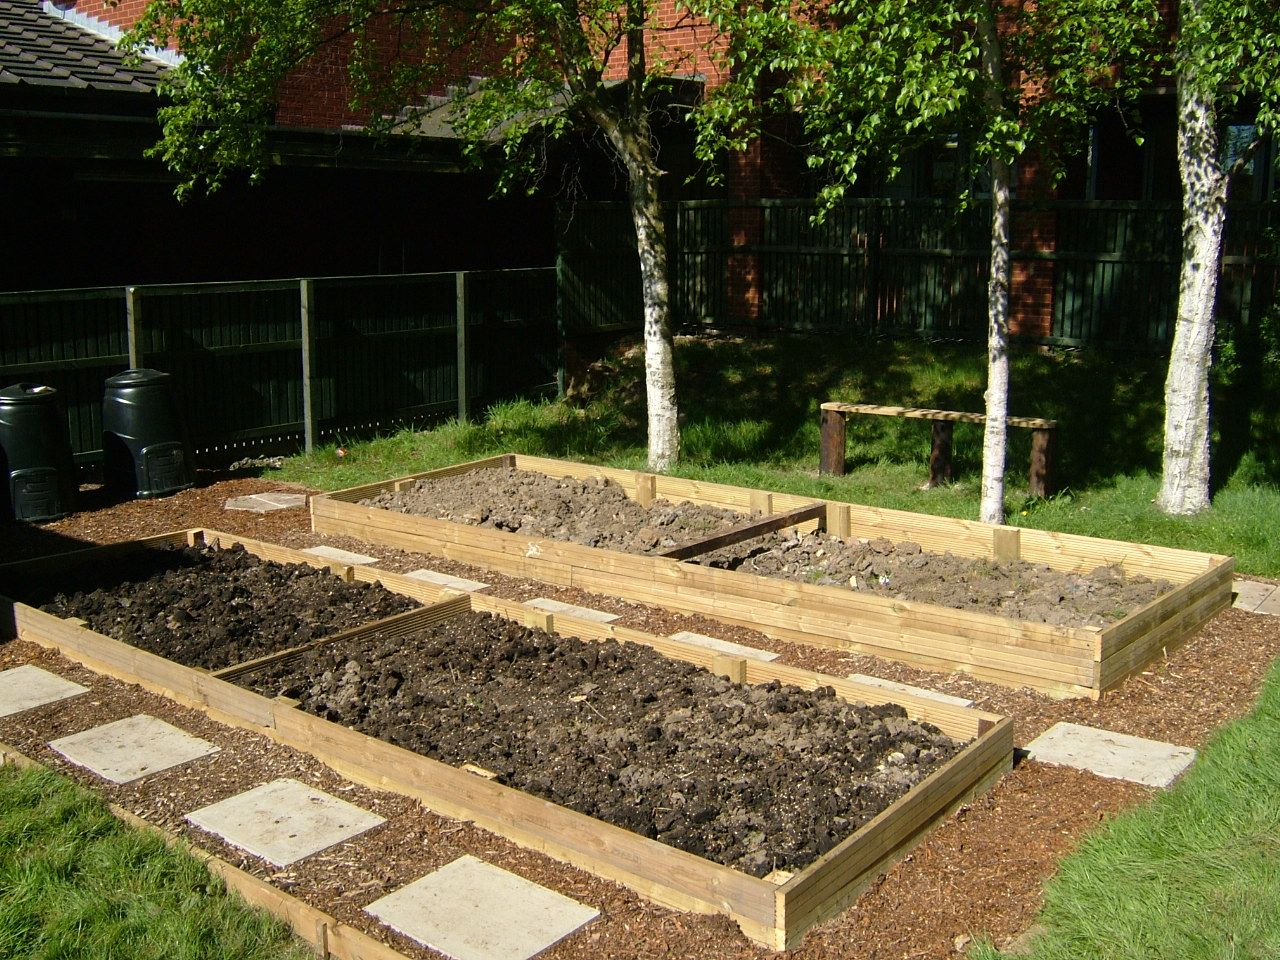 Allotment bed designs allotments pinterest allotment for Vegetable plot ideas